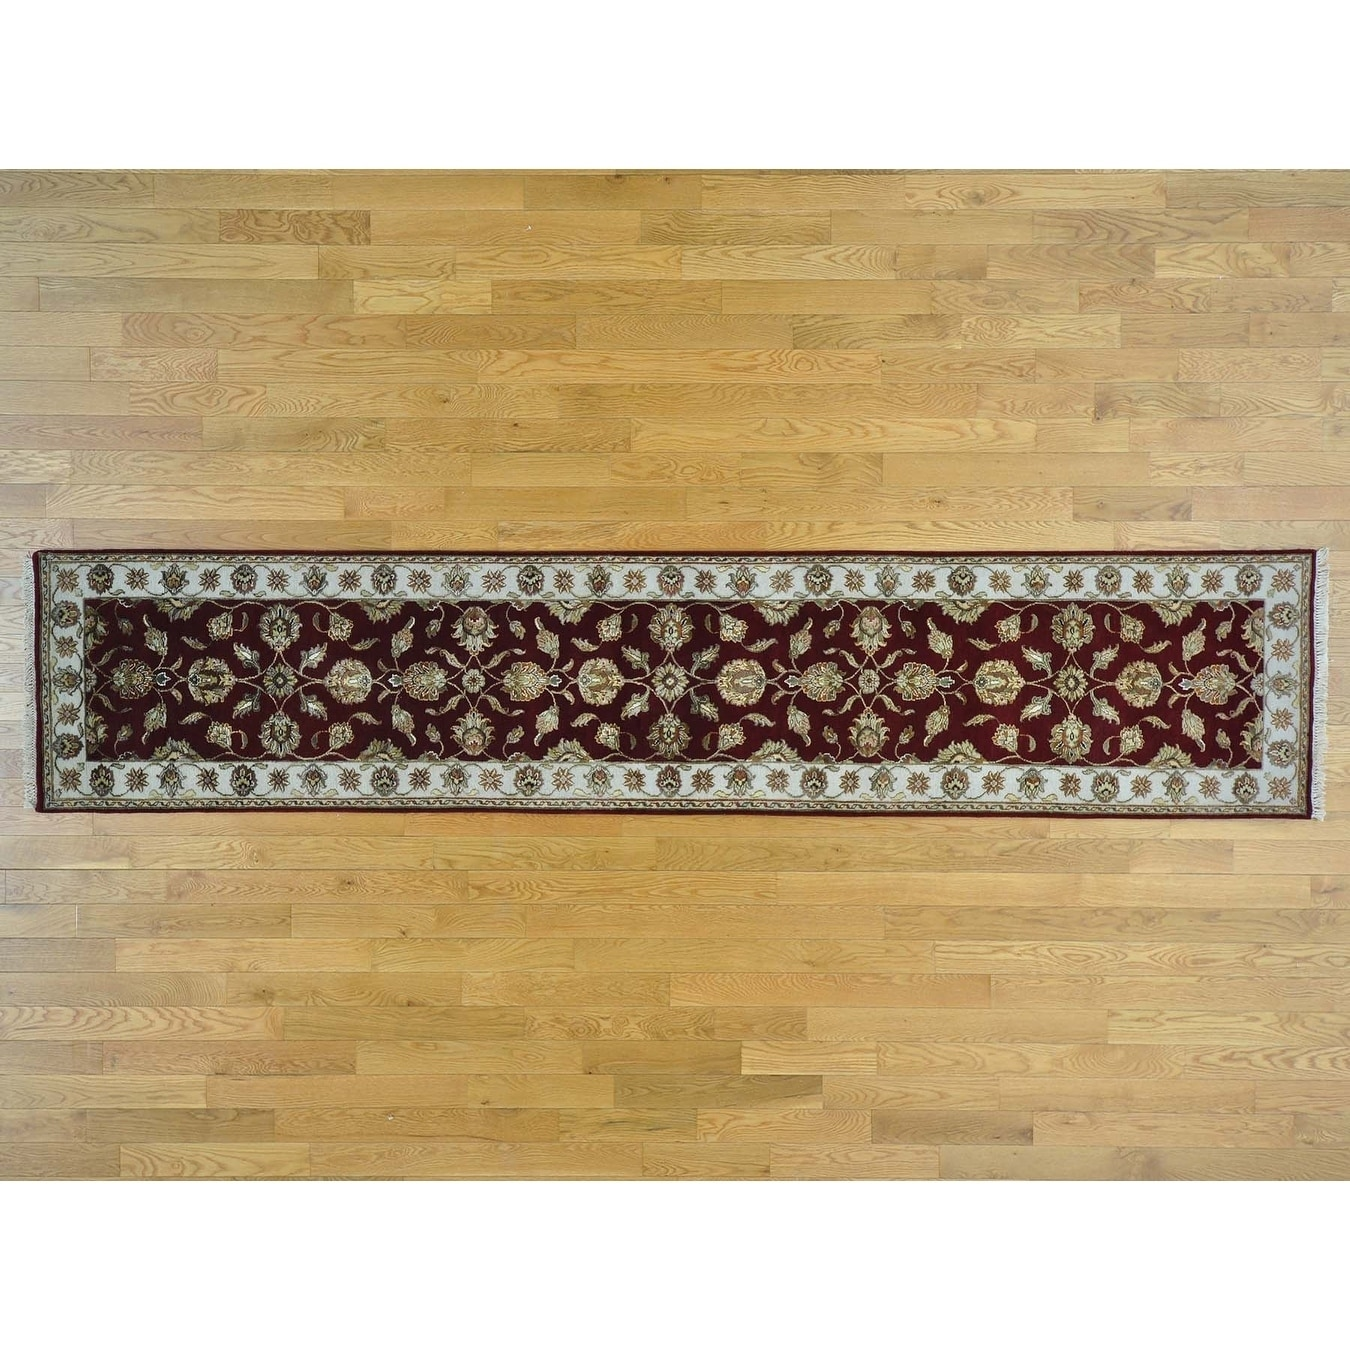 Hand Knotted Red Rajasthan with Wool & Silk Oriental Rug